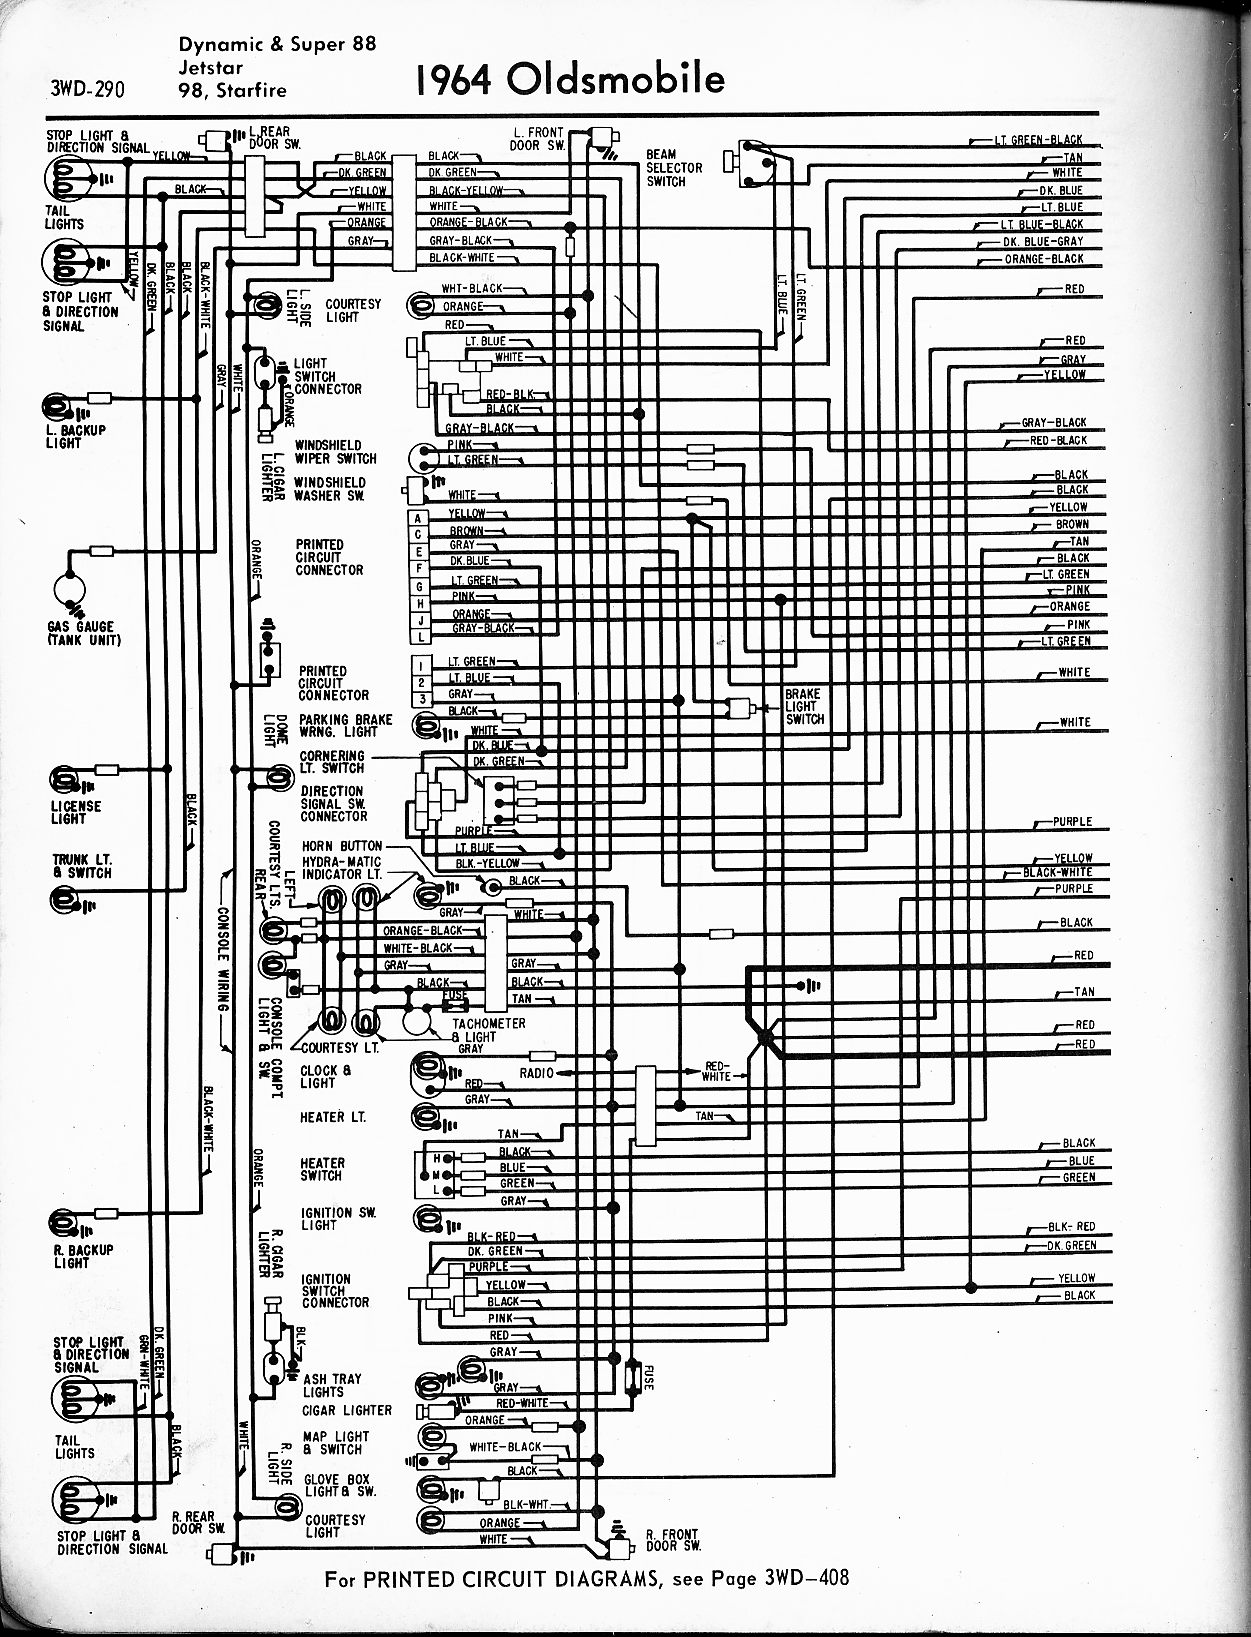 1998 oldsmobile wiring diagrams wiring library 1969 Lemans Wiring Diagram oldsmobile wiring diagrams the old car manual project rh oldcarmanualproject com 1998 oldsmobile cutlass engine diagram